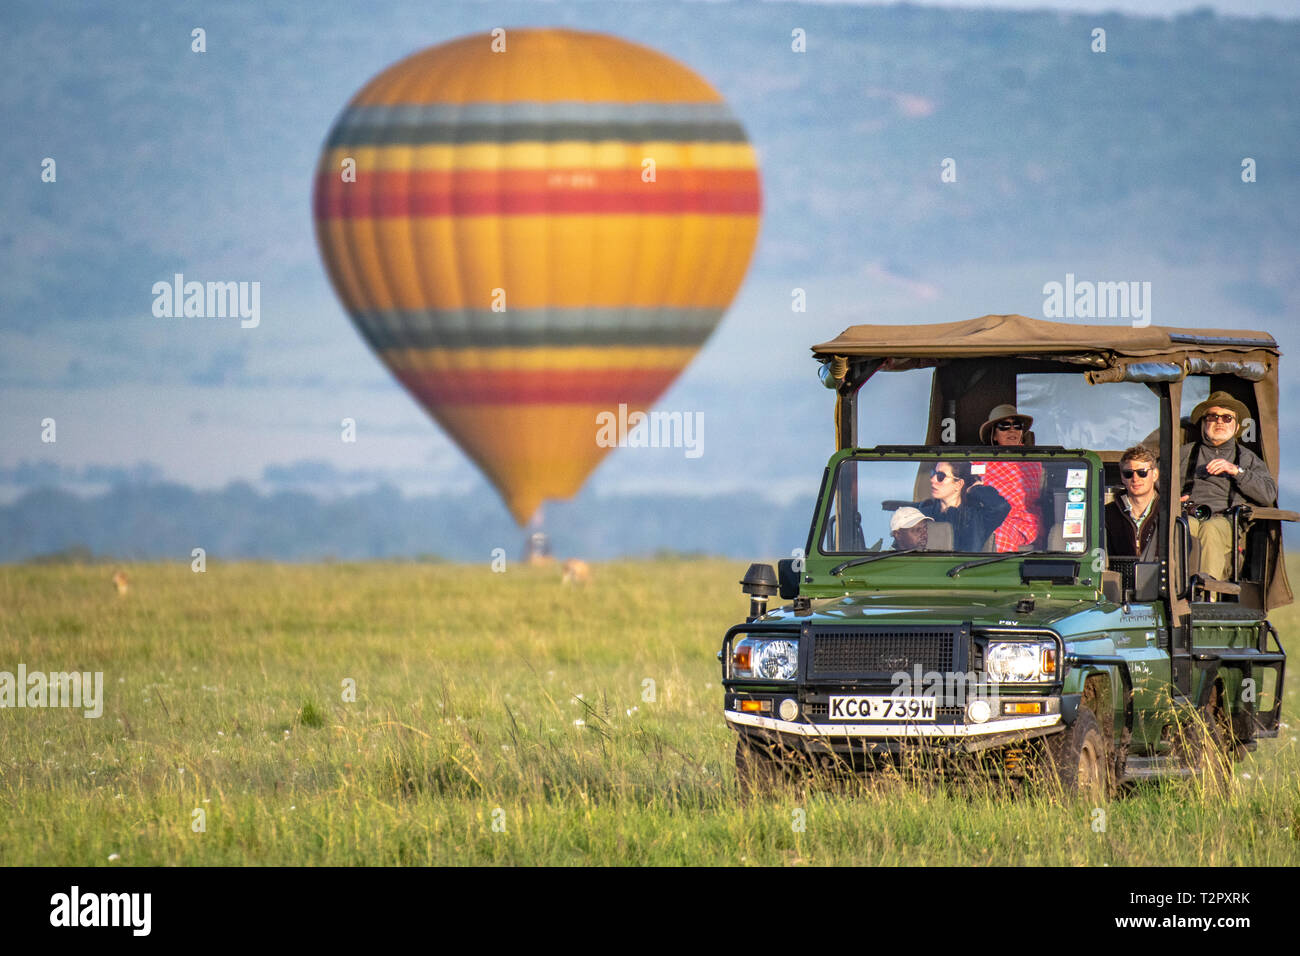 A hot air balloon lands in the background as tourist drive by in a game viewer in Maasai Mara National Reserve, Kenya - Stock Image